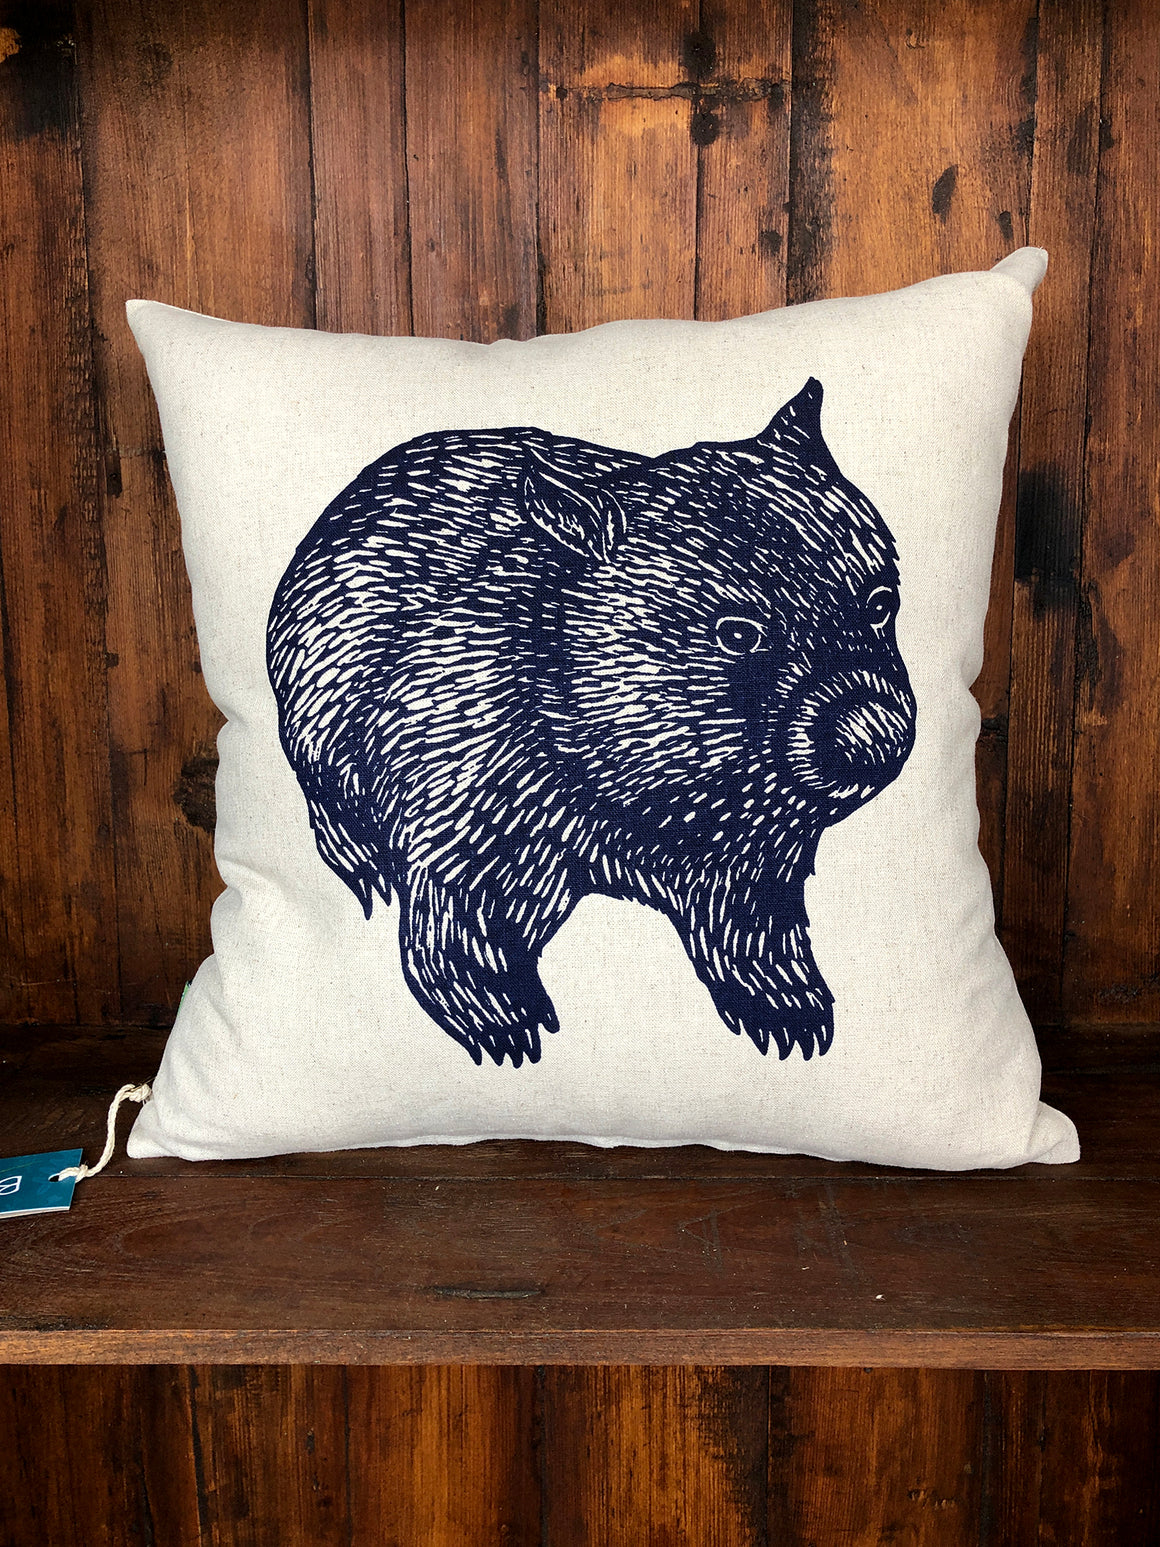 Bursaria wombat cushion